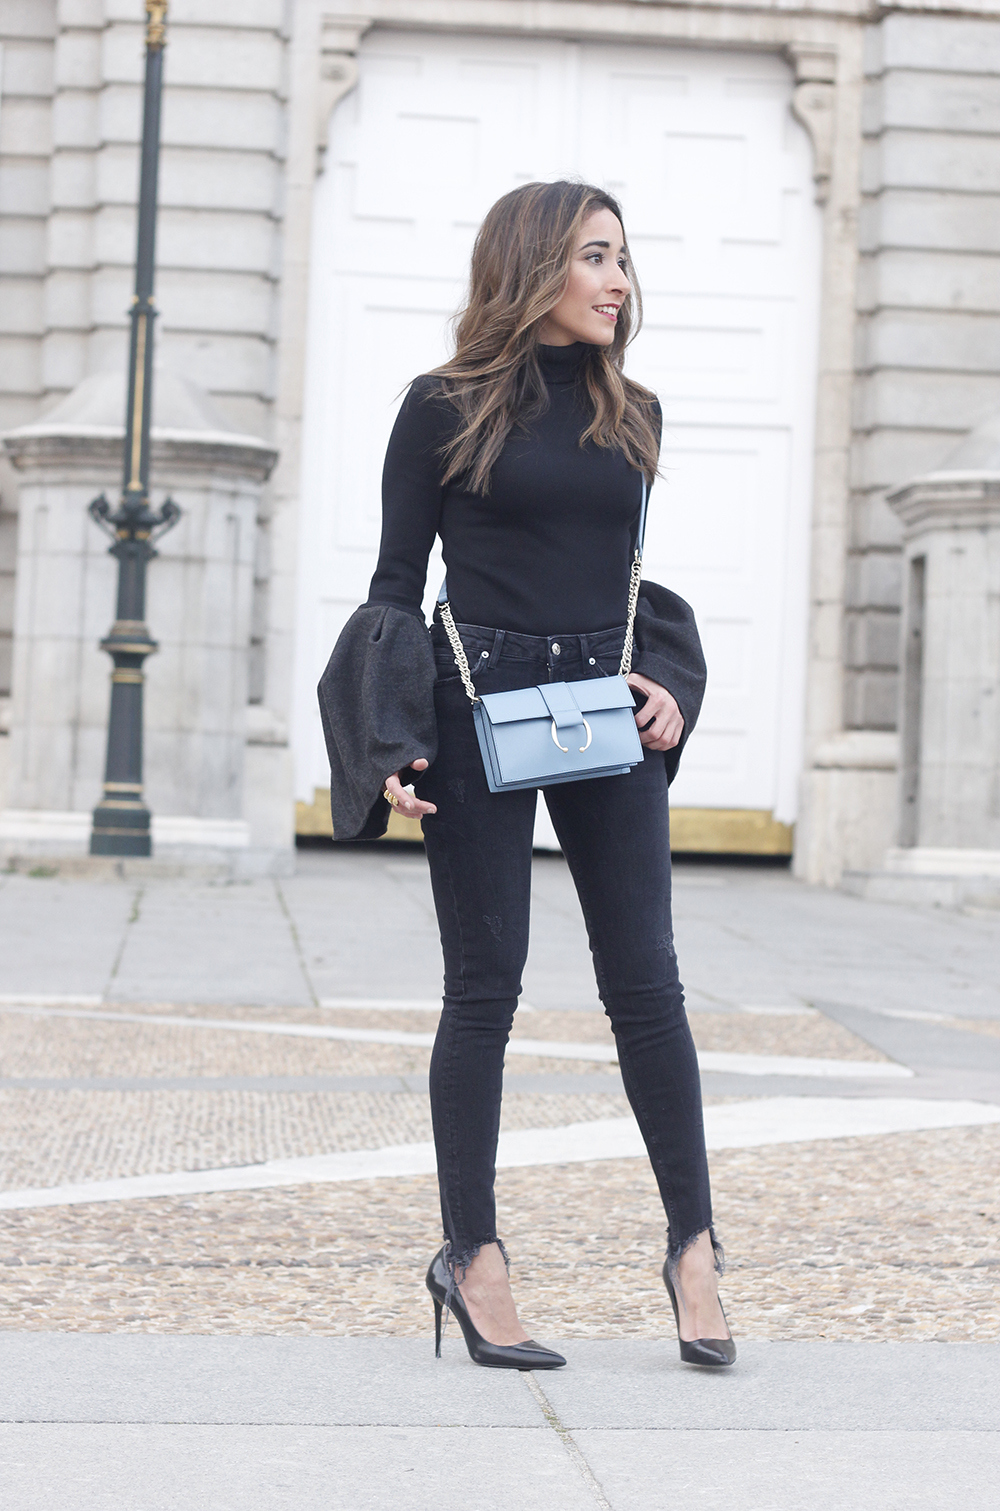 Black sweater with bell sleeves black jeans heels uterqüe bag palacio real madrid street style fashion outfit07